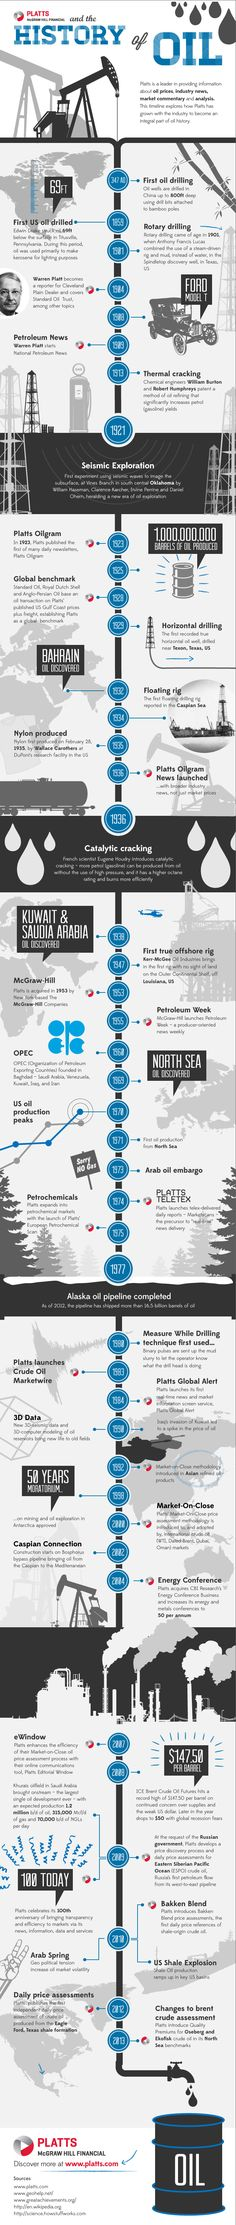 Platts and the history of oil Infographic. http://blogs.platts.com/wp-content/uploads/2013/10/Platts-History-of-Oil-infographic_no_btns_v4.jpg